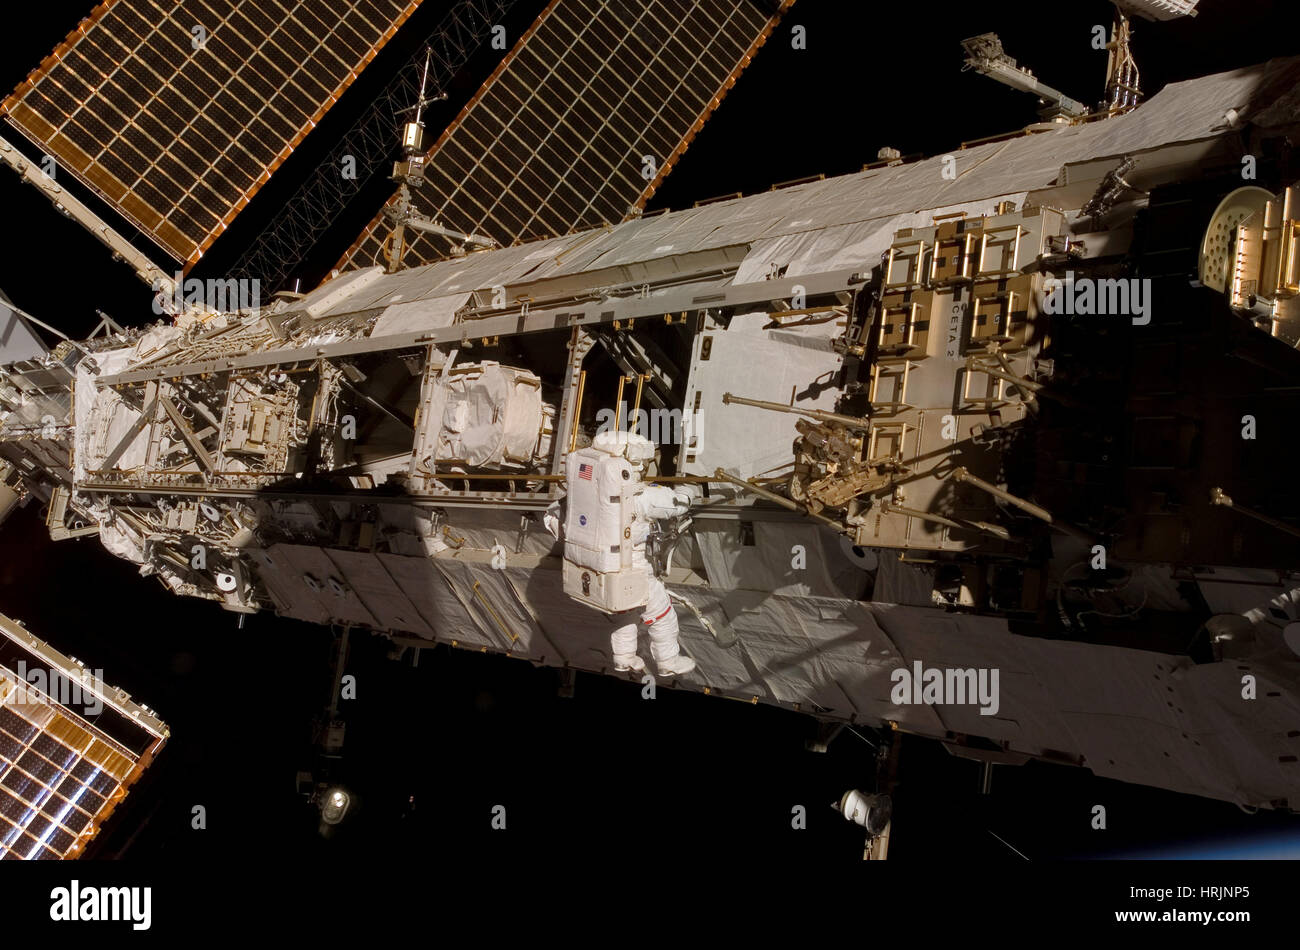 STS-120, ISS Construction, 2007 - Stock Image